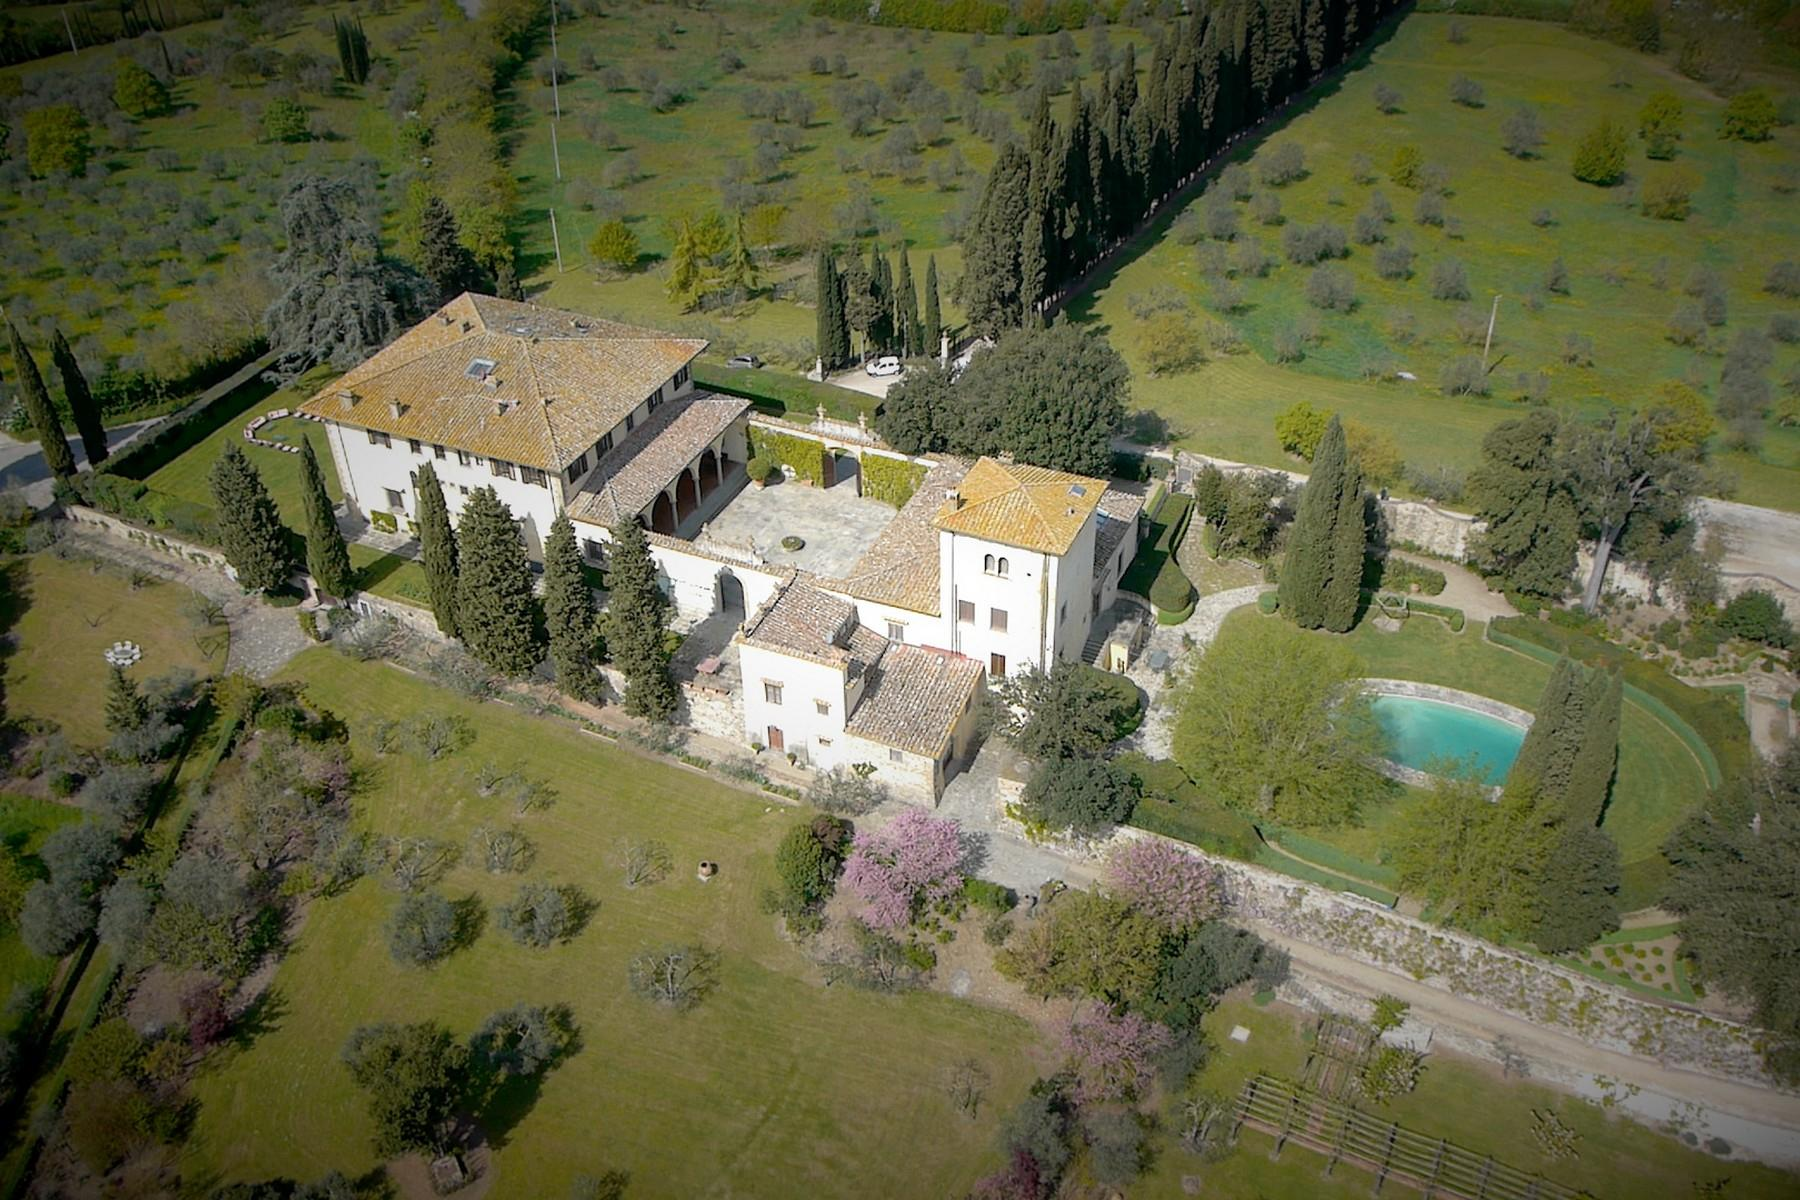 Marvellous Renaissance Villa with pool on the hills of Florence - 43